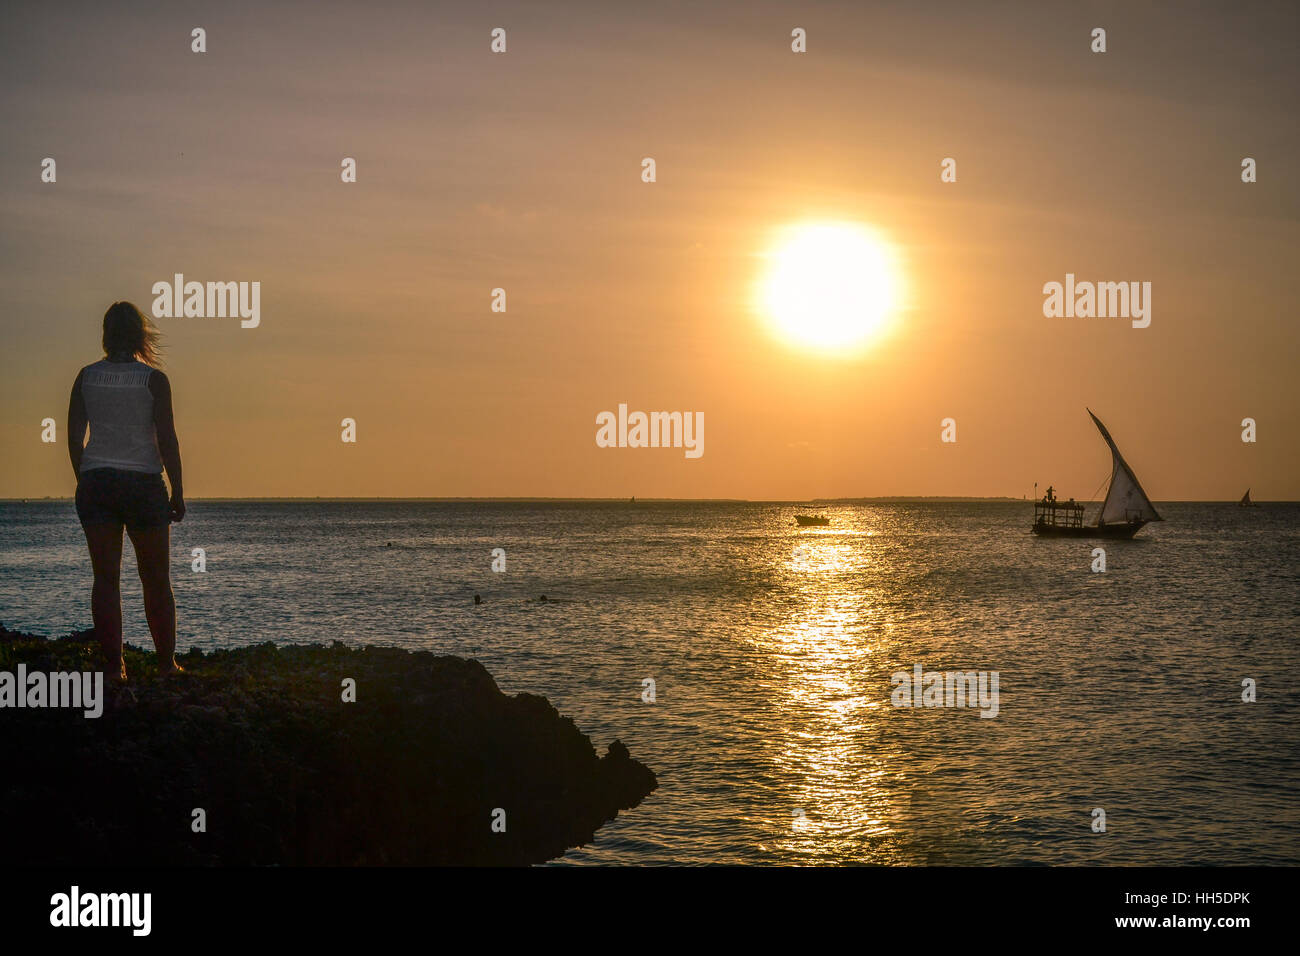 Amazing sunset with woman and boat - Stock Image